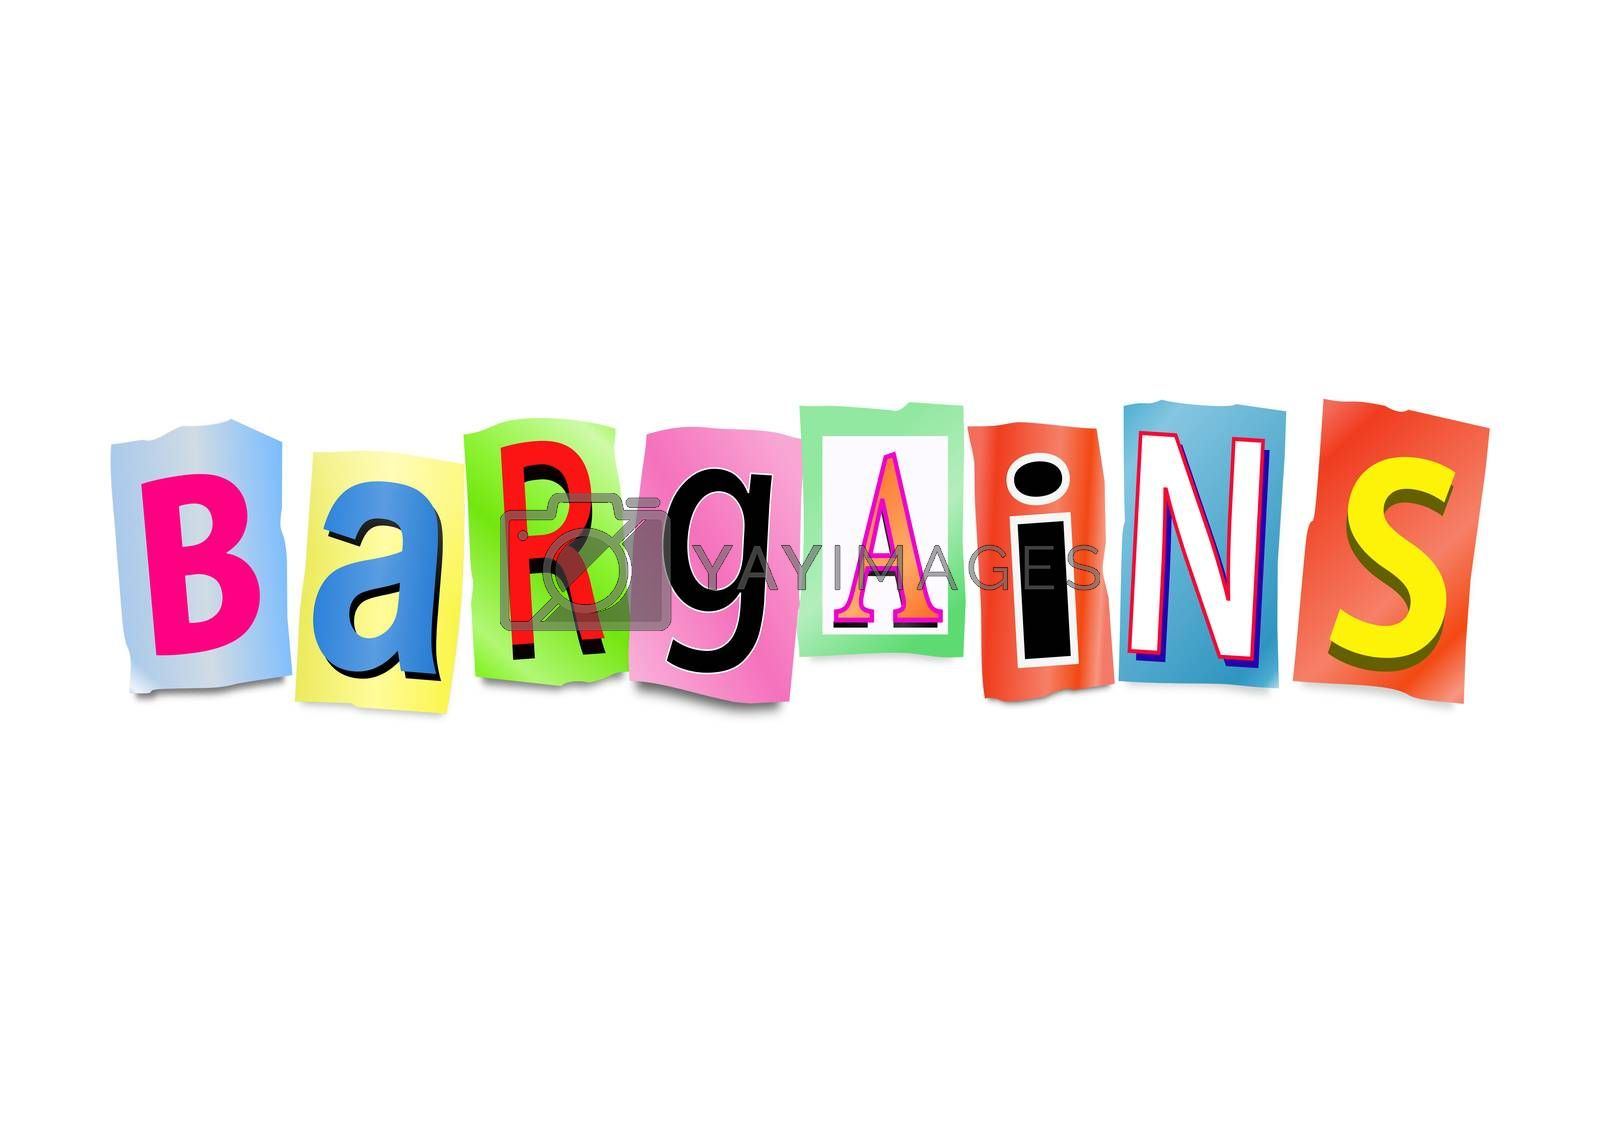 Illustration depicting a set of cut out printed letters arranged to form the word bargains.